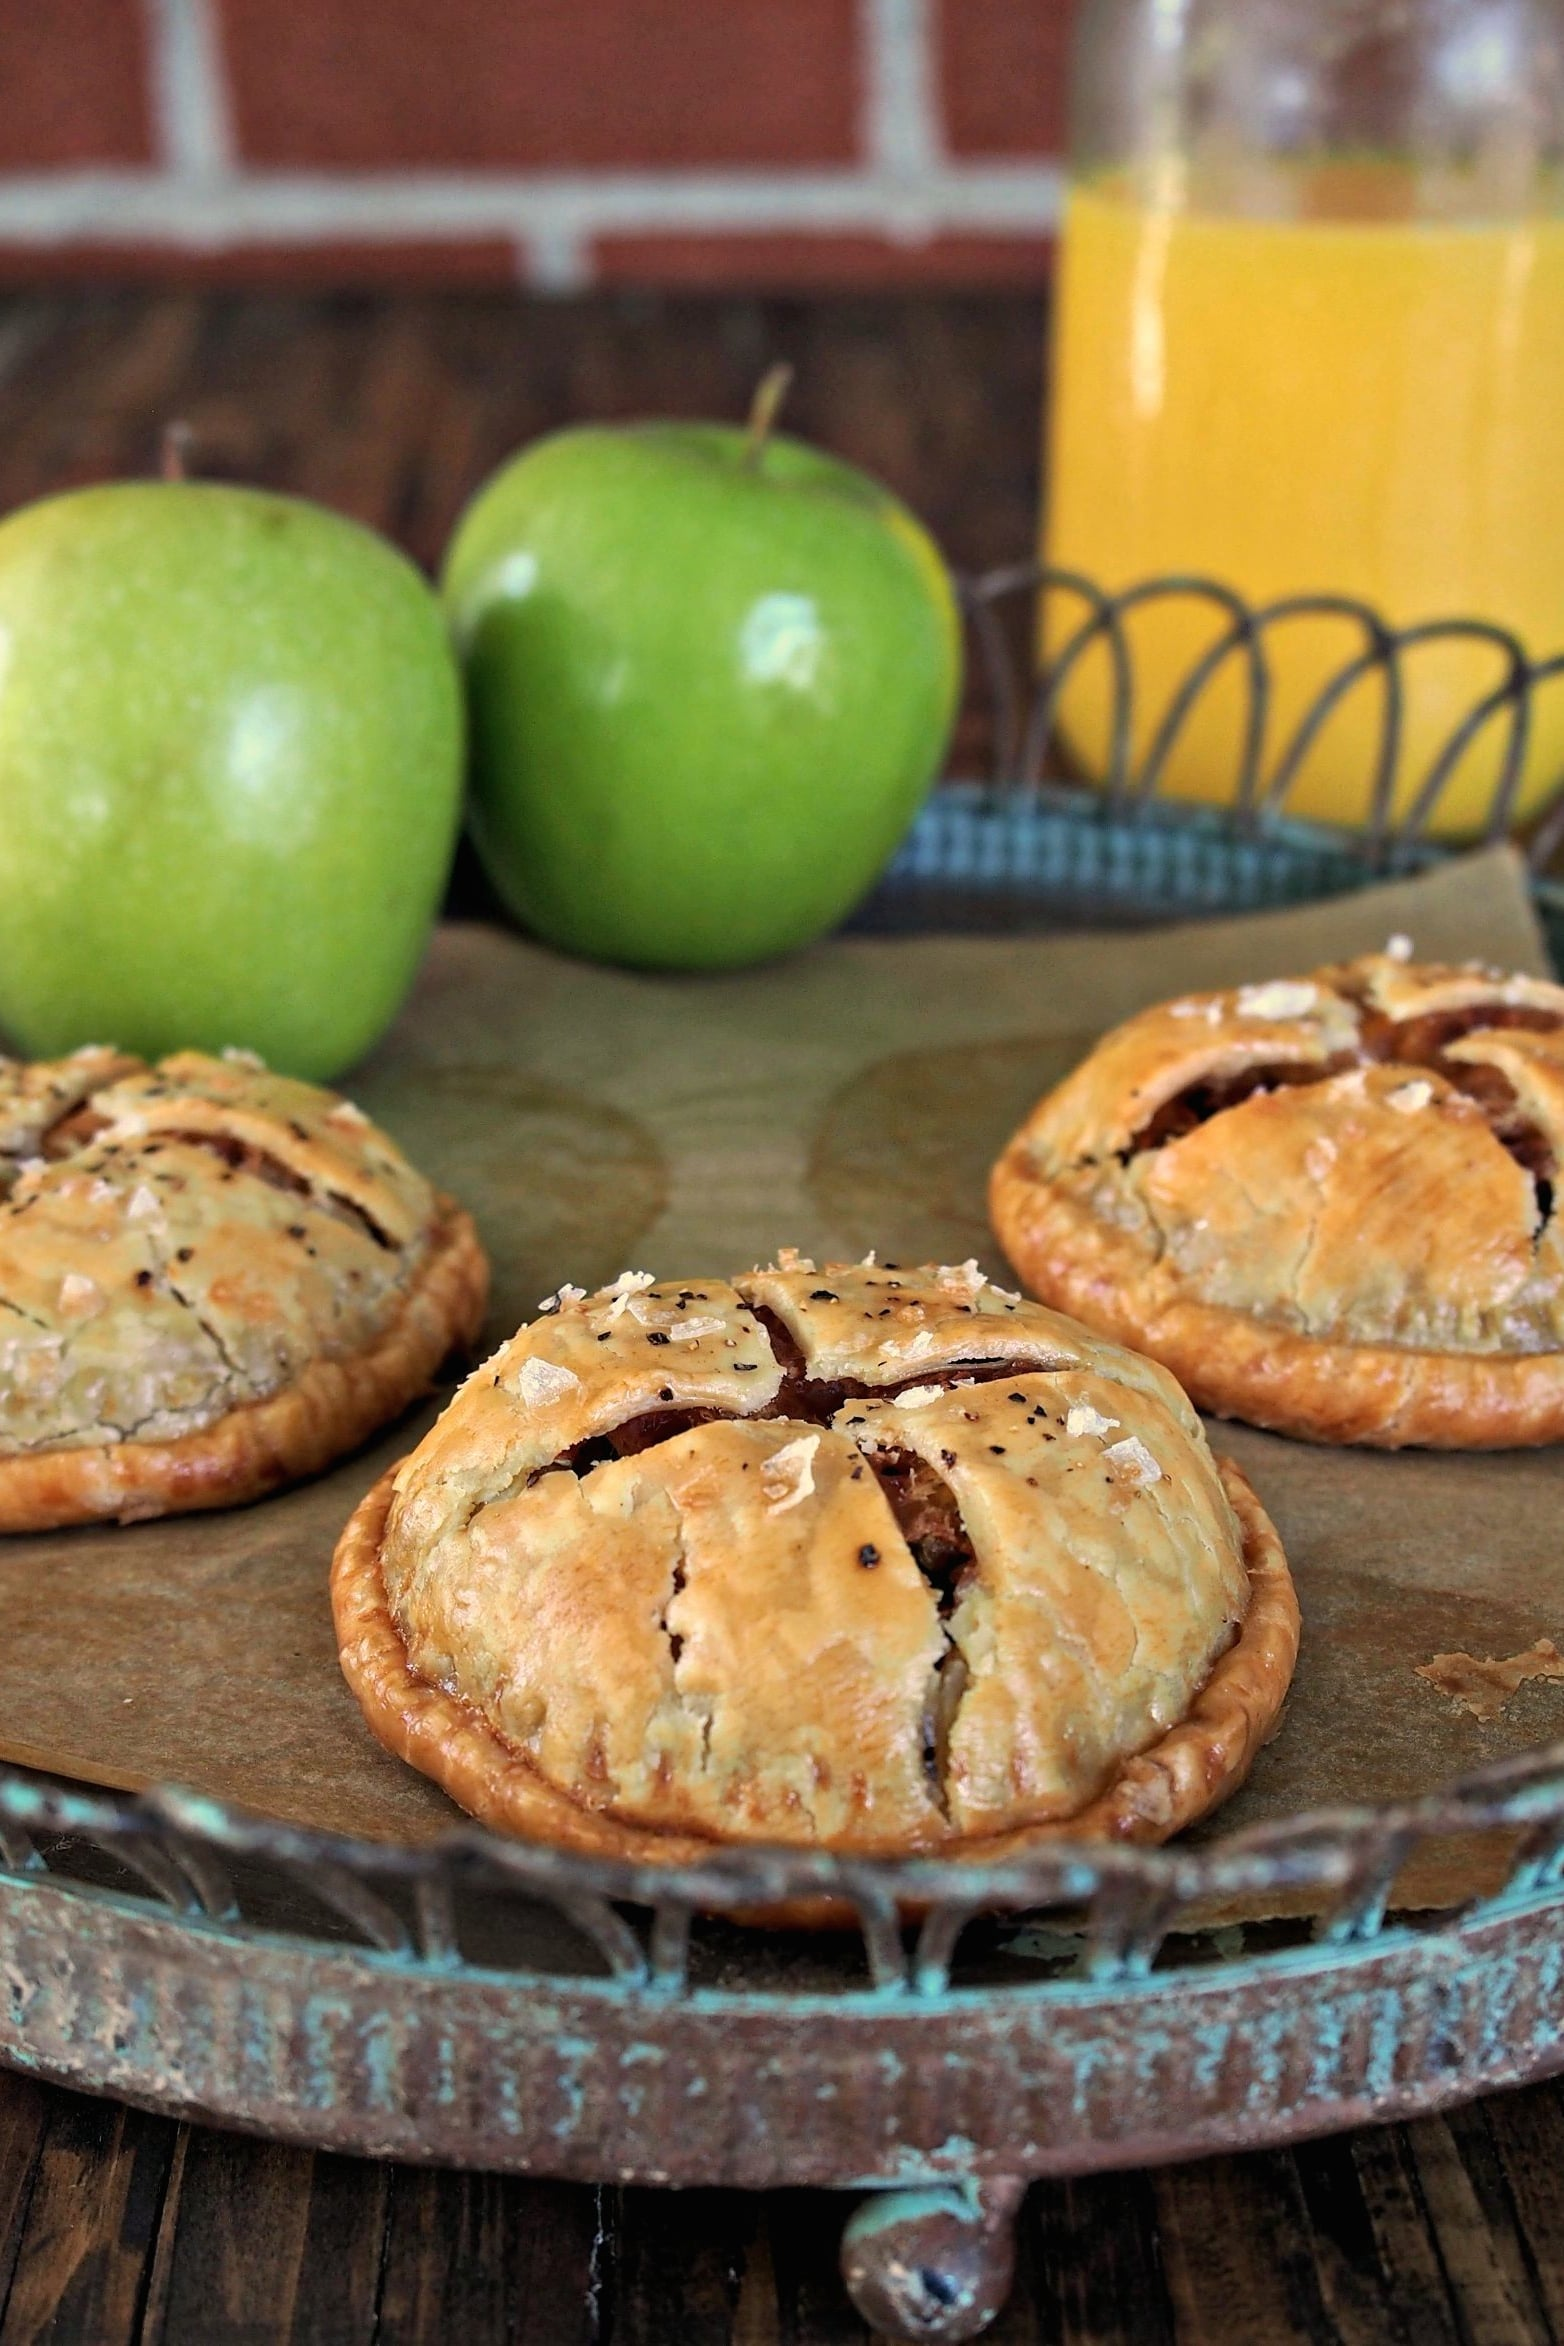 Chicken Sausage Hand Pies. Simply delicious. Jones Dairy Chicken Sausage Patties, apples & onions in mini pie form. A terrific breakfast for any morning. Simply Sated (sponsored by Jones Dairy Farm)